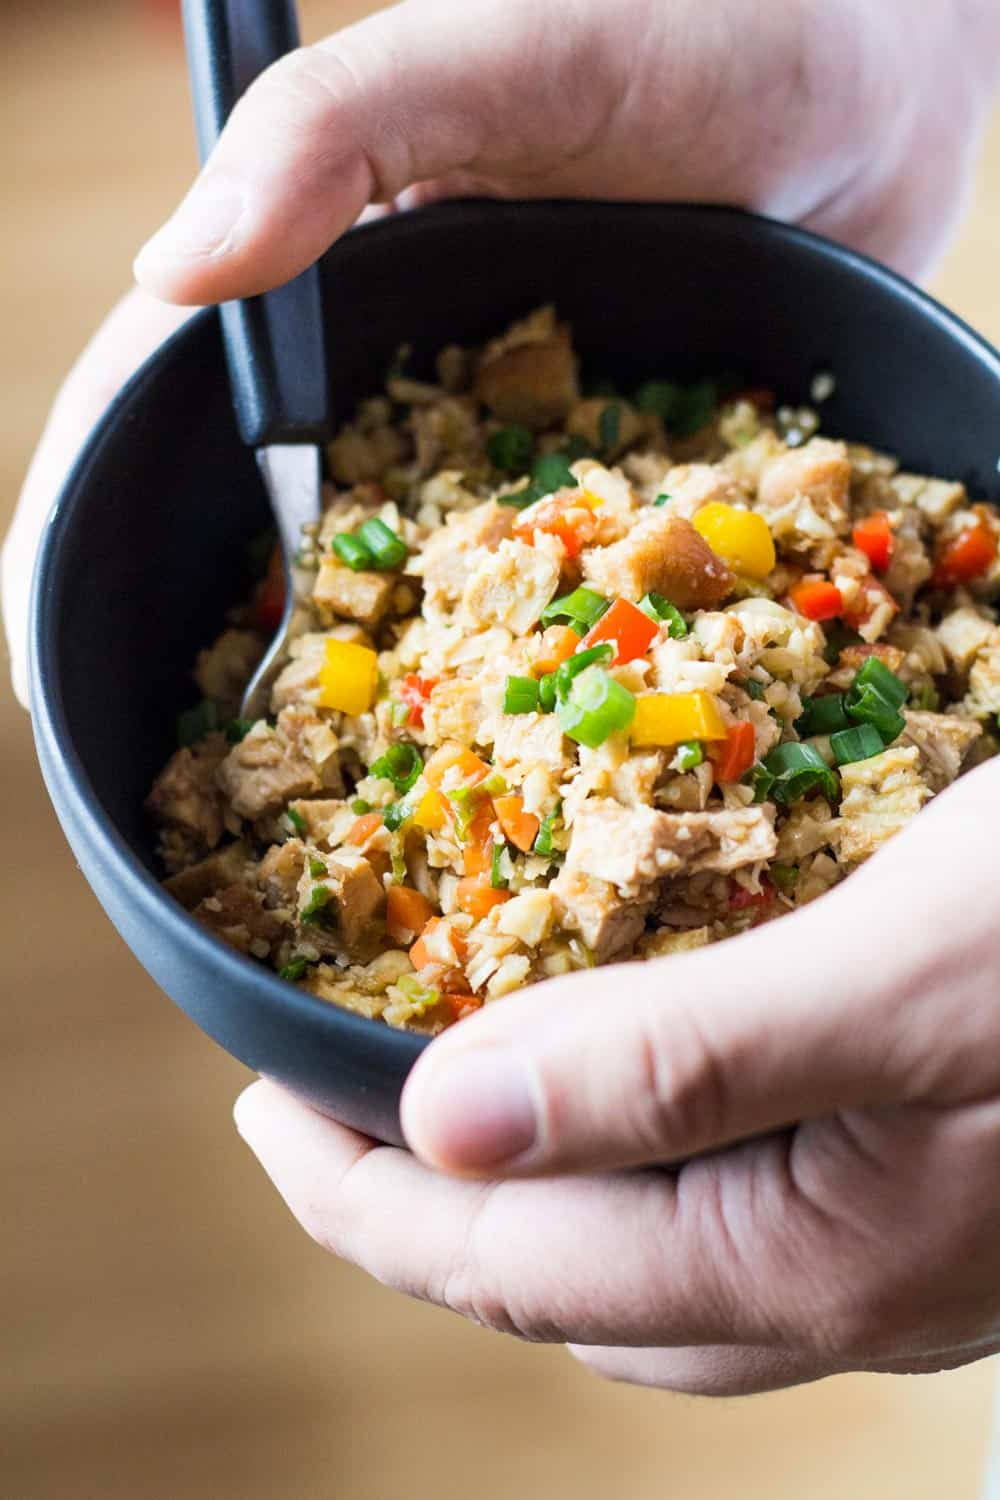 Close up of hands holding a bowl of Cauliflower Fried Rice with a spoon.